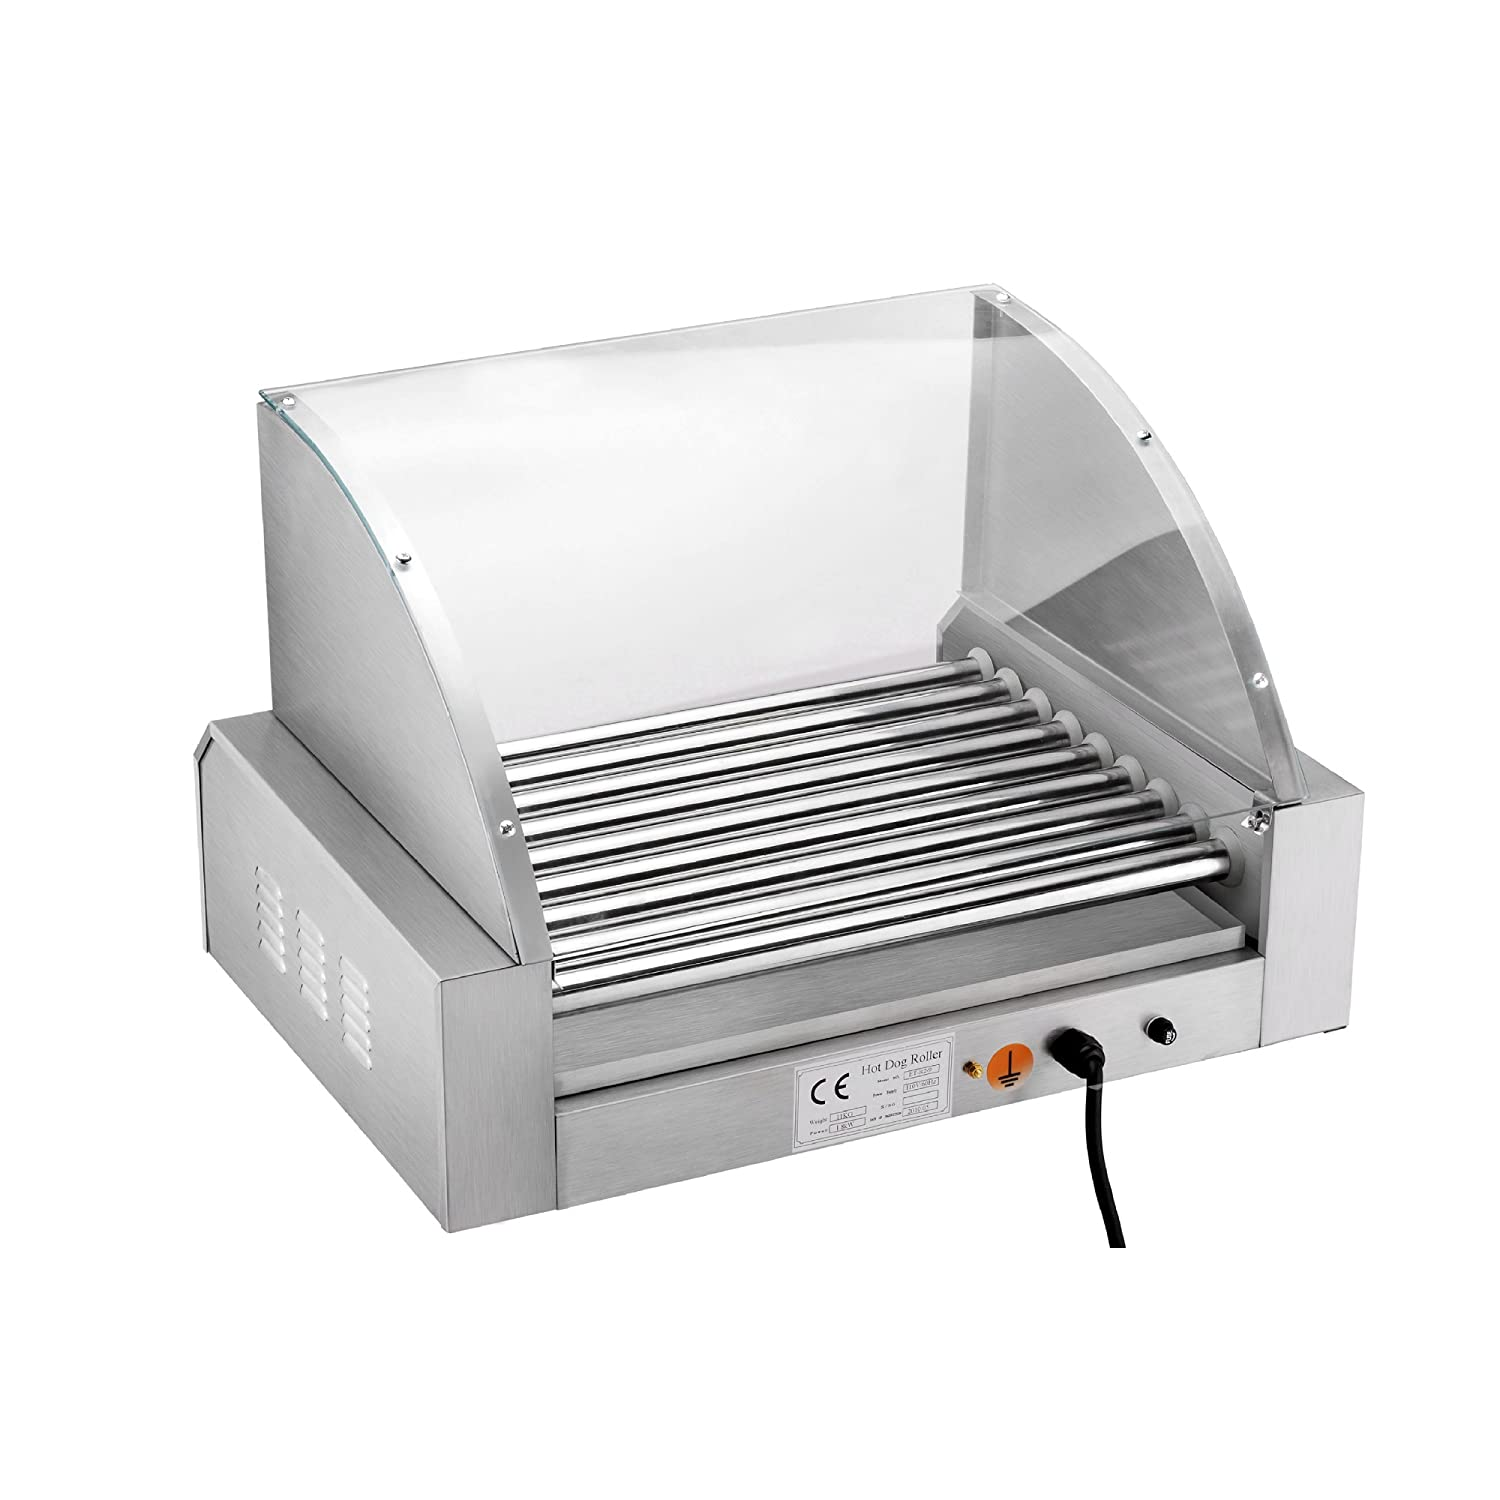 Uncategorized Hot Dog Cookers Specialty Kitchen Appliances amazon com great northern mad dawg commercial 9 roller stainless steel hot dog machine with cover electric rotisseries kitchen